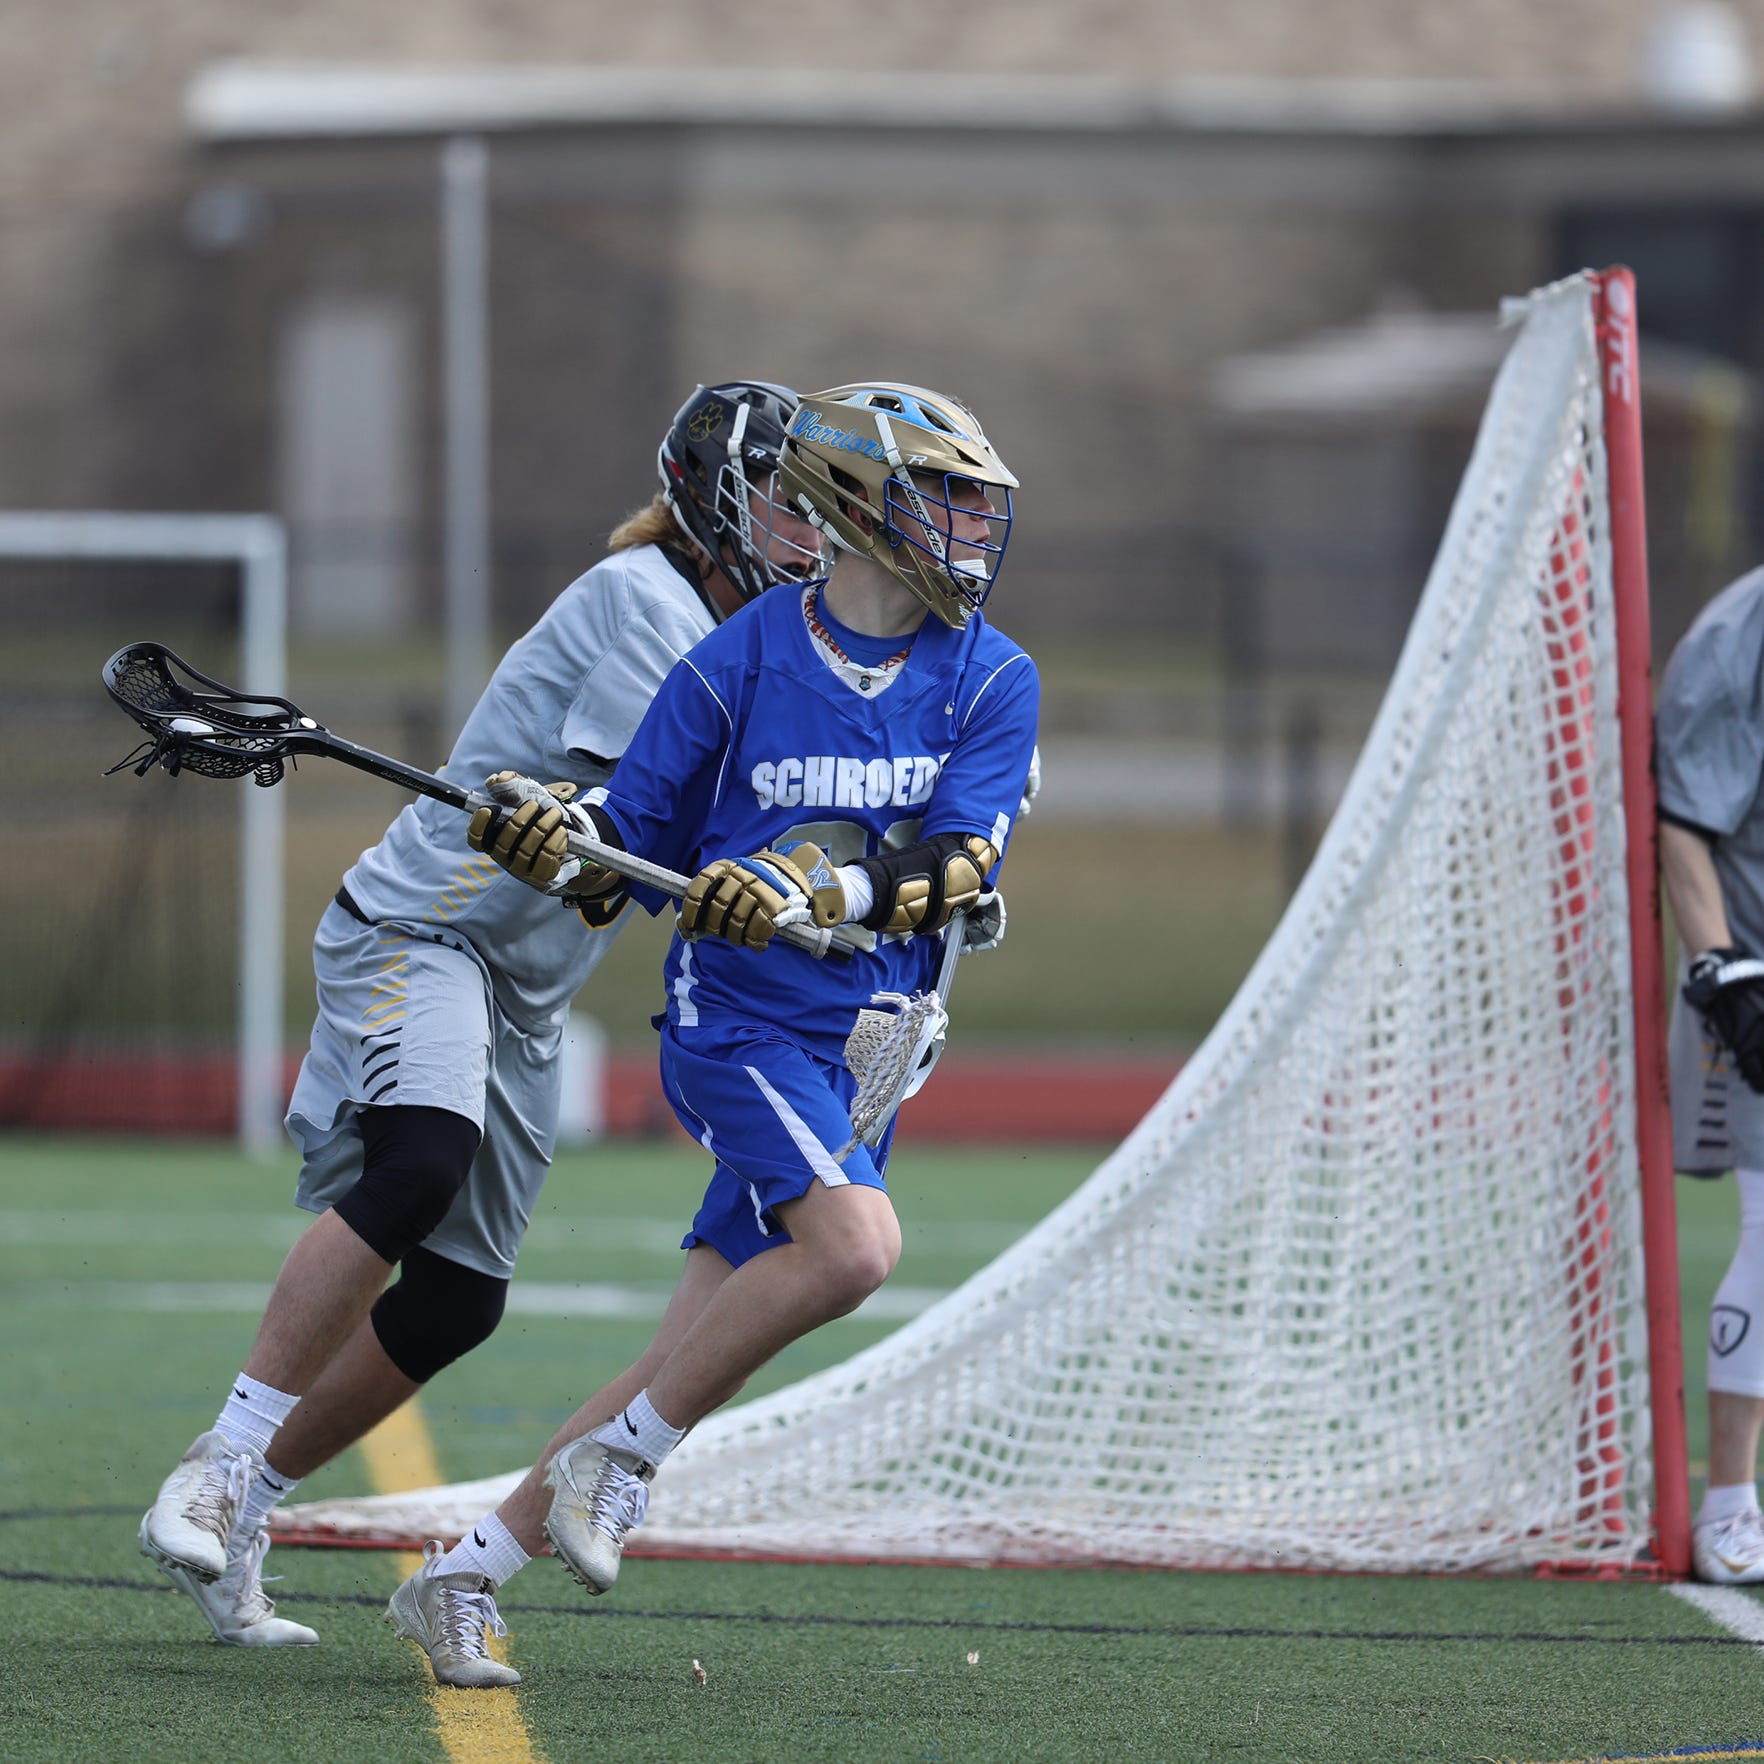 High school scores for Saturday, April 6: Find out how your favorite team fared